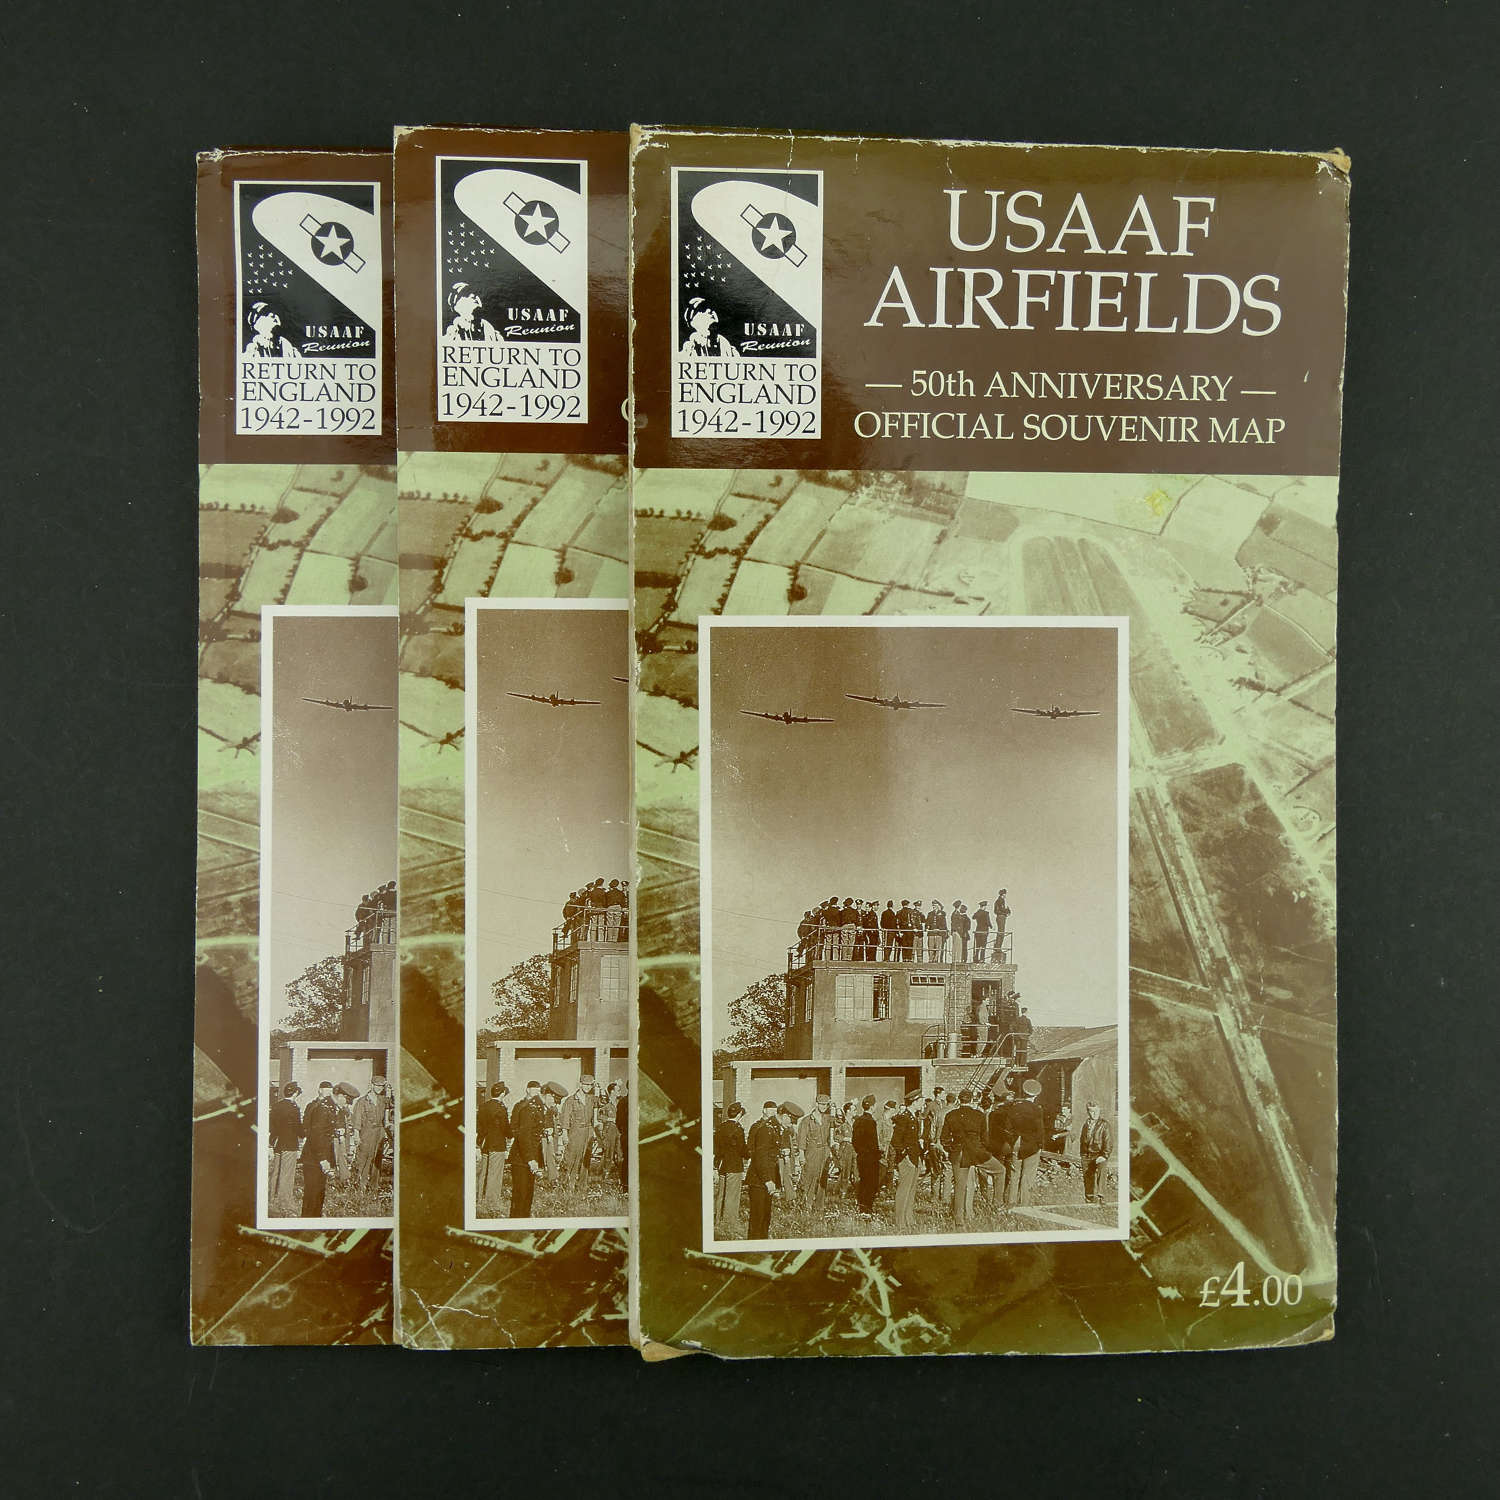 USAAF Airfields map - 50th anniversary